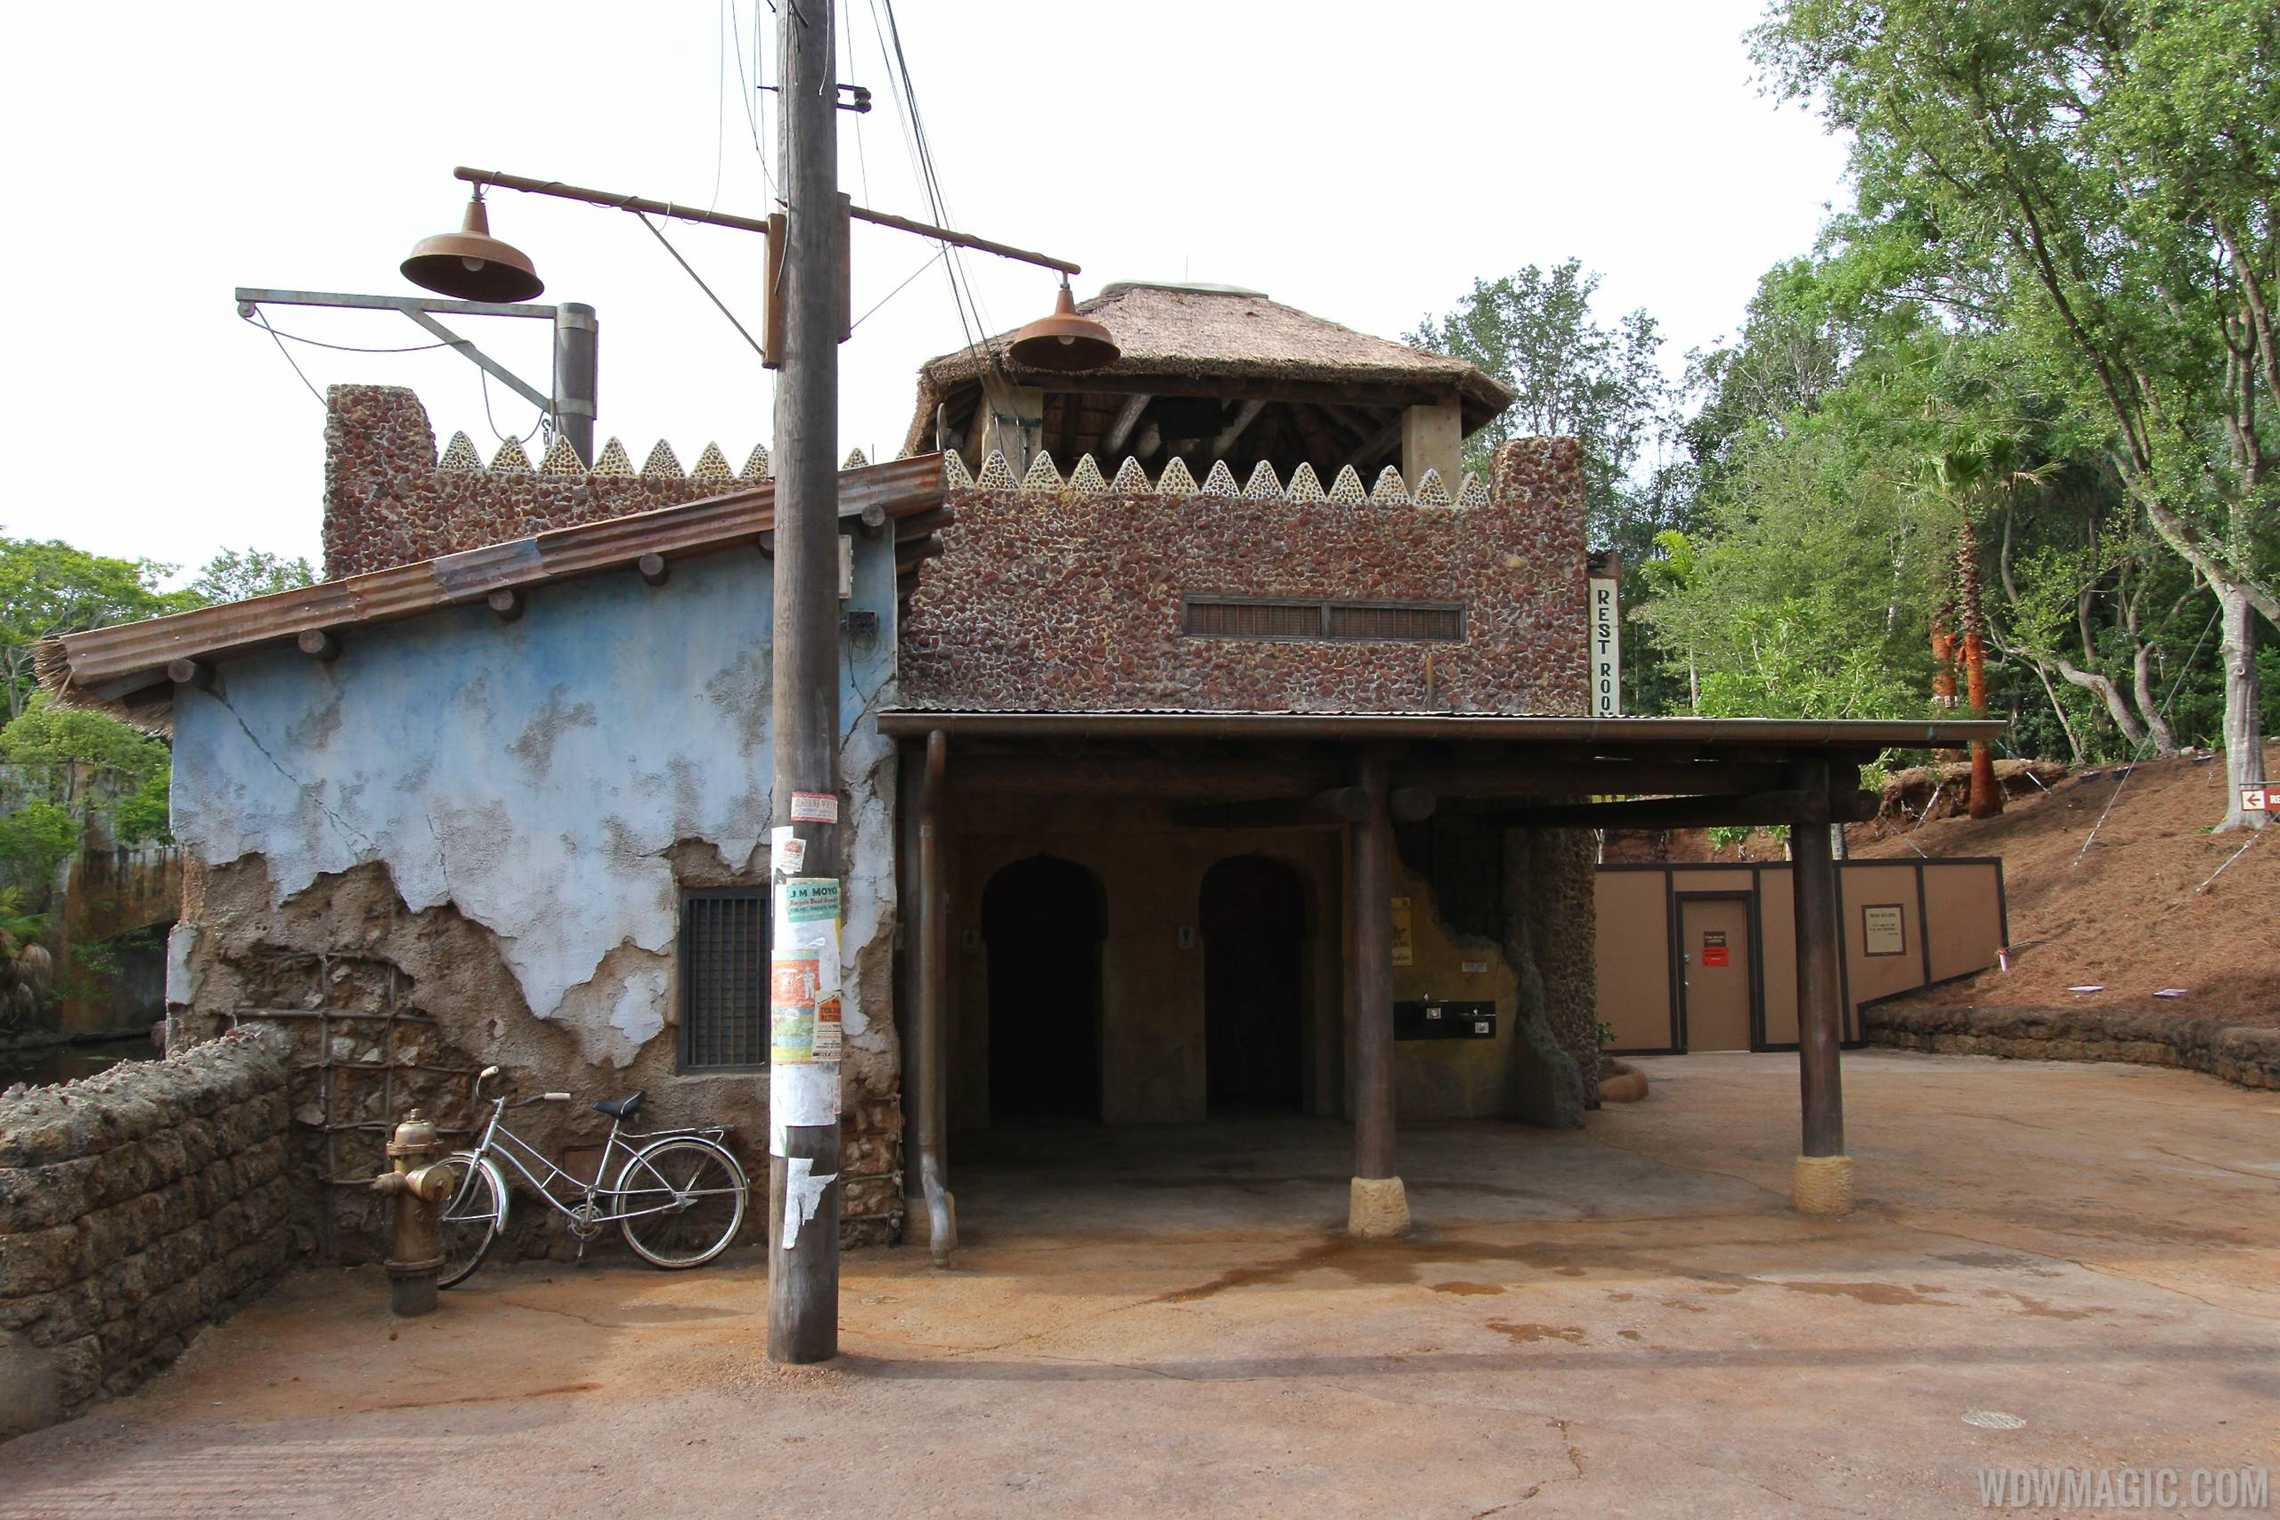 New Harambe Theatre area in Africa - The restrooms